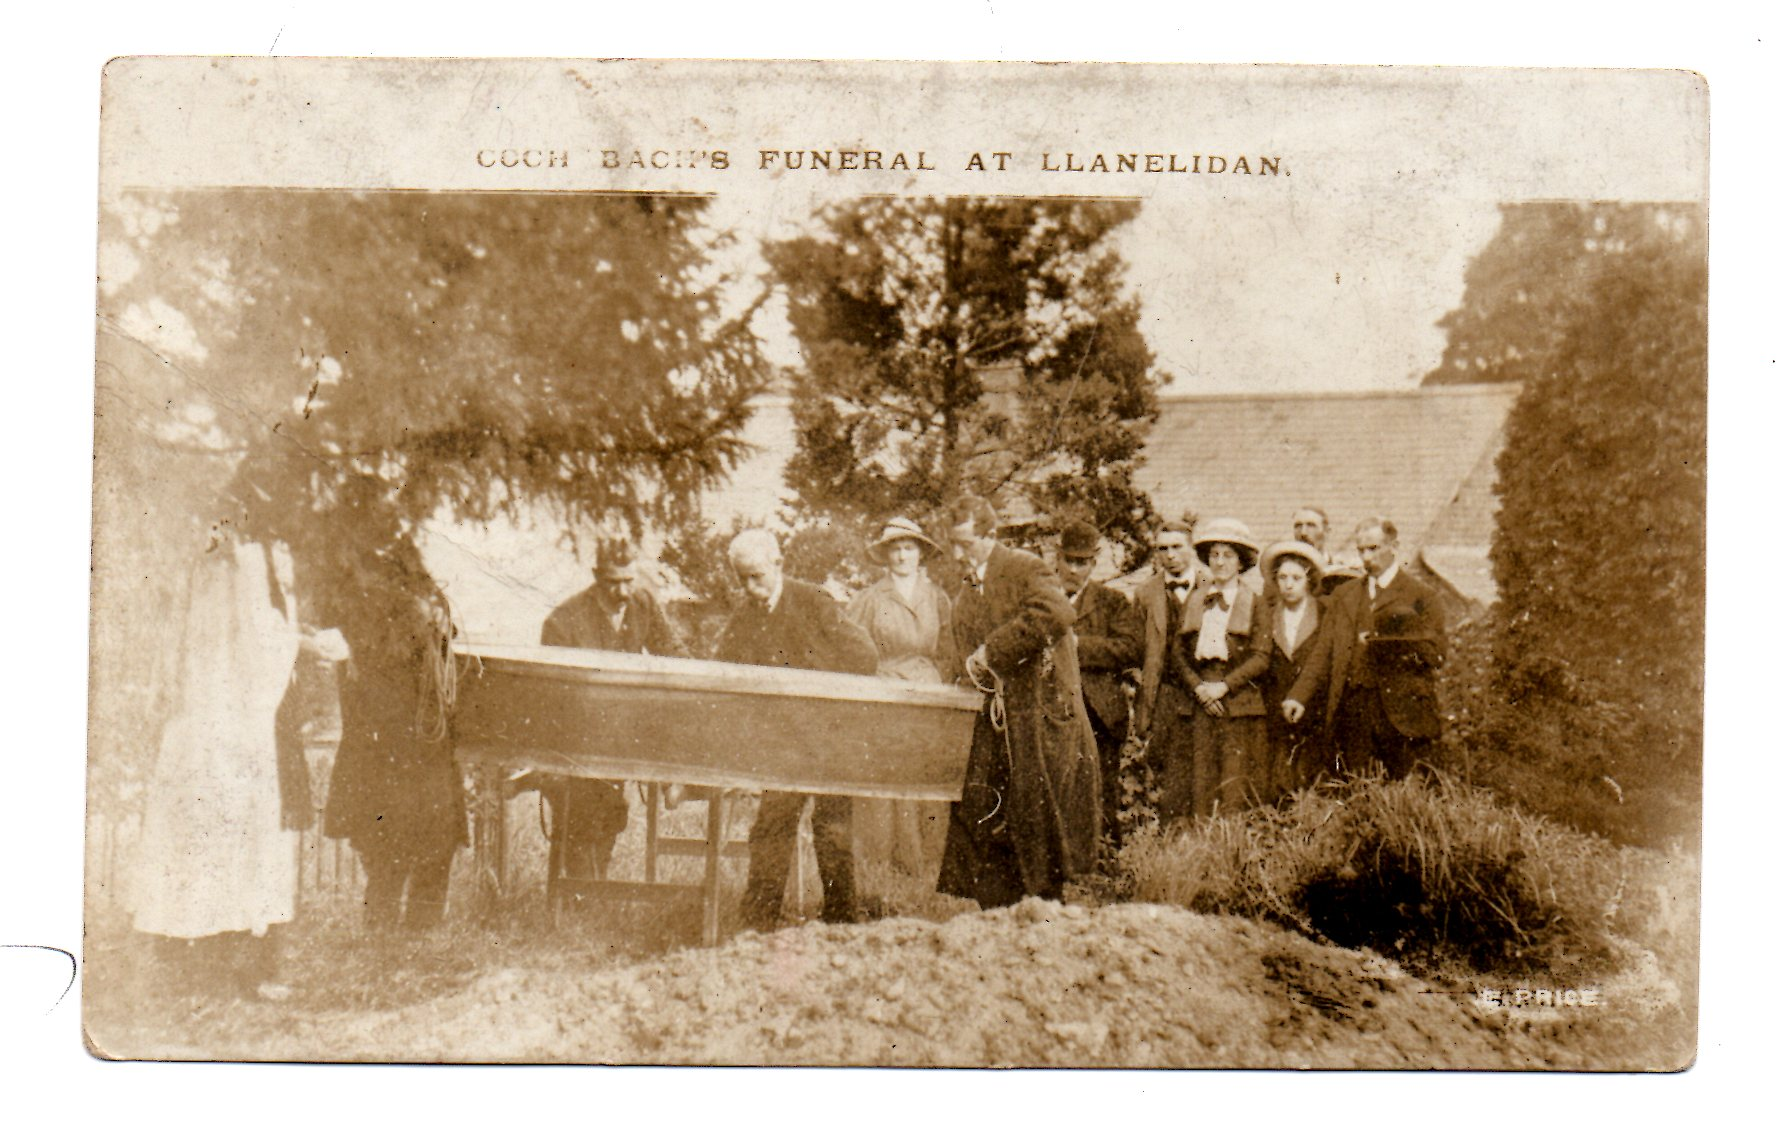 Coch funeral